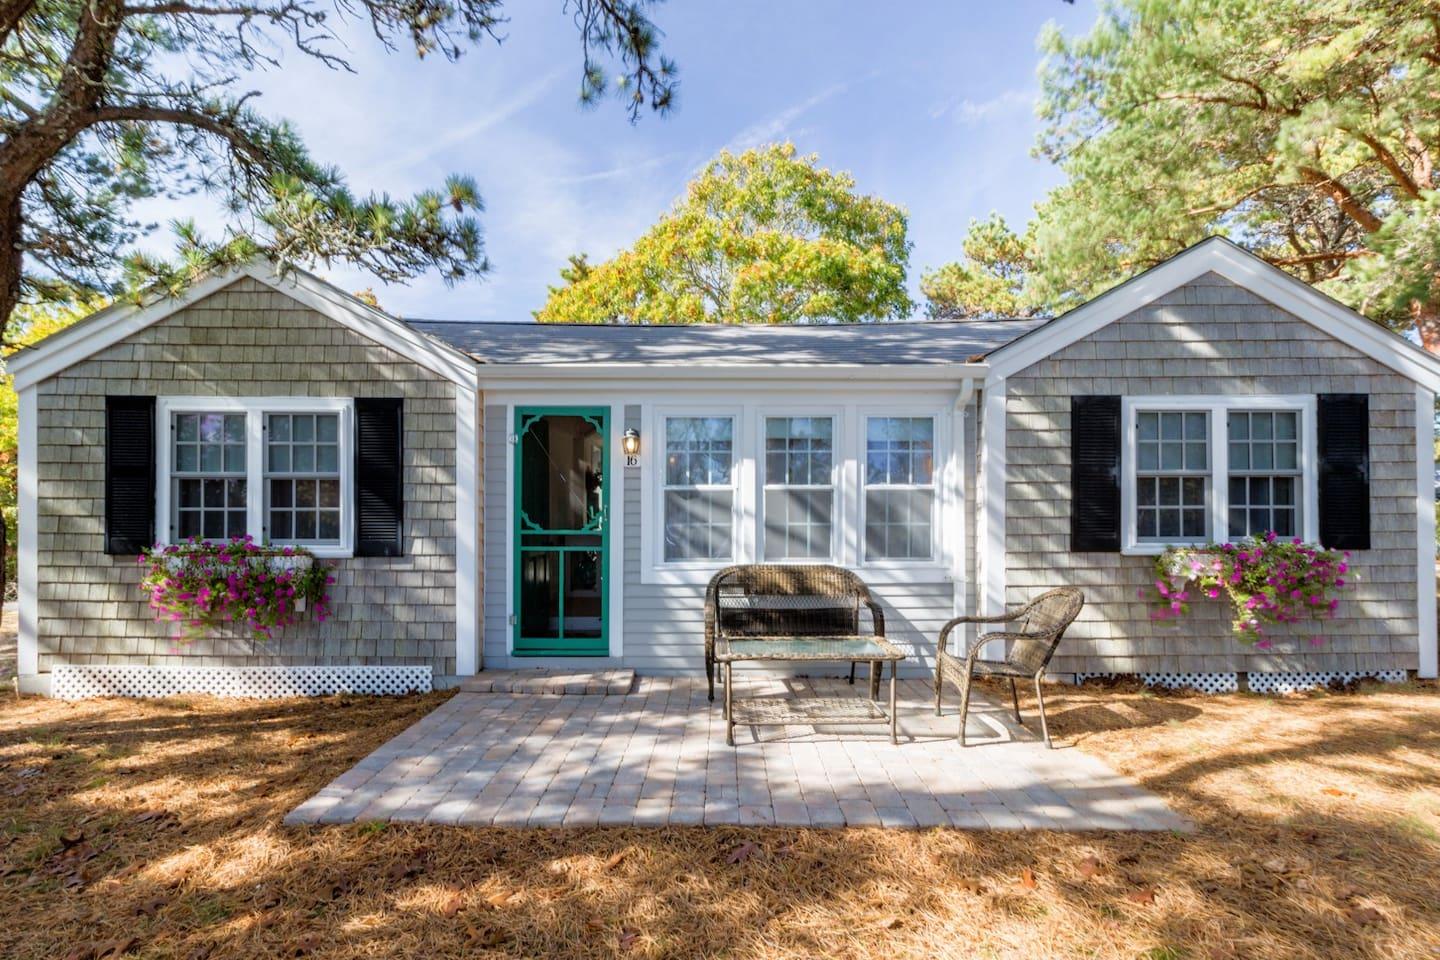 Sea Star Cottage - Your Home Away From Home